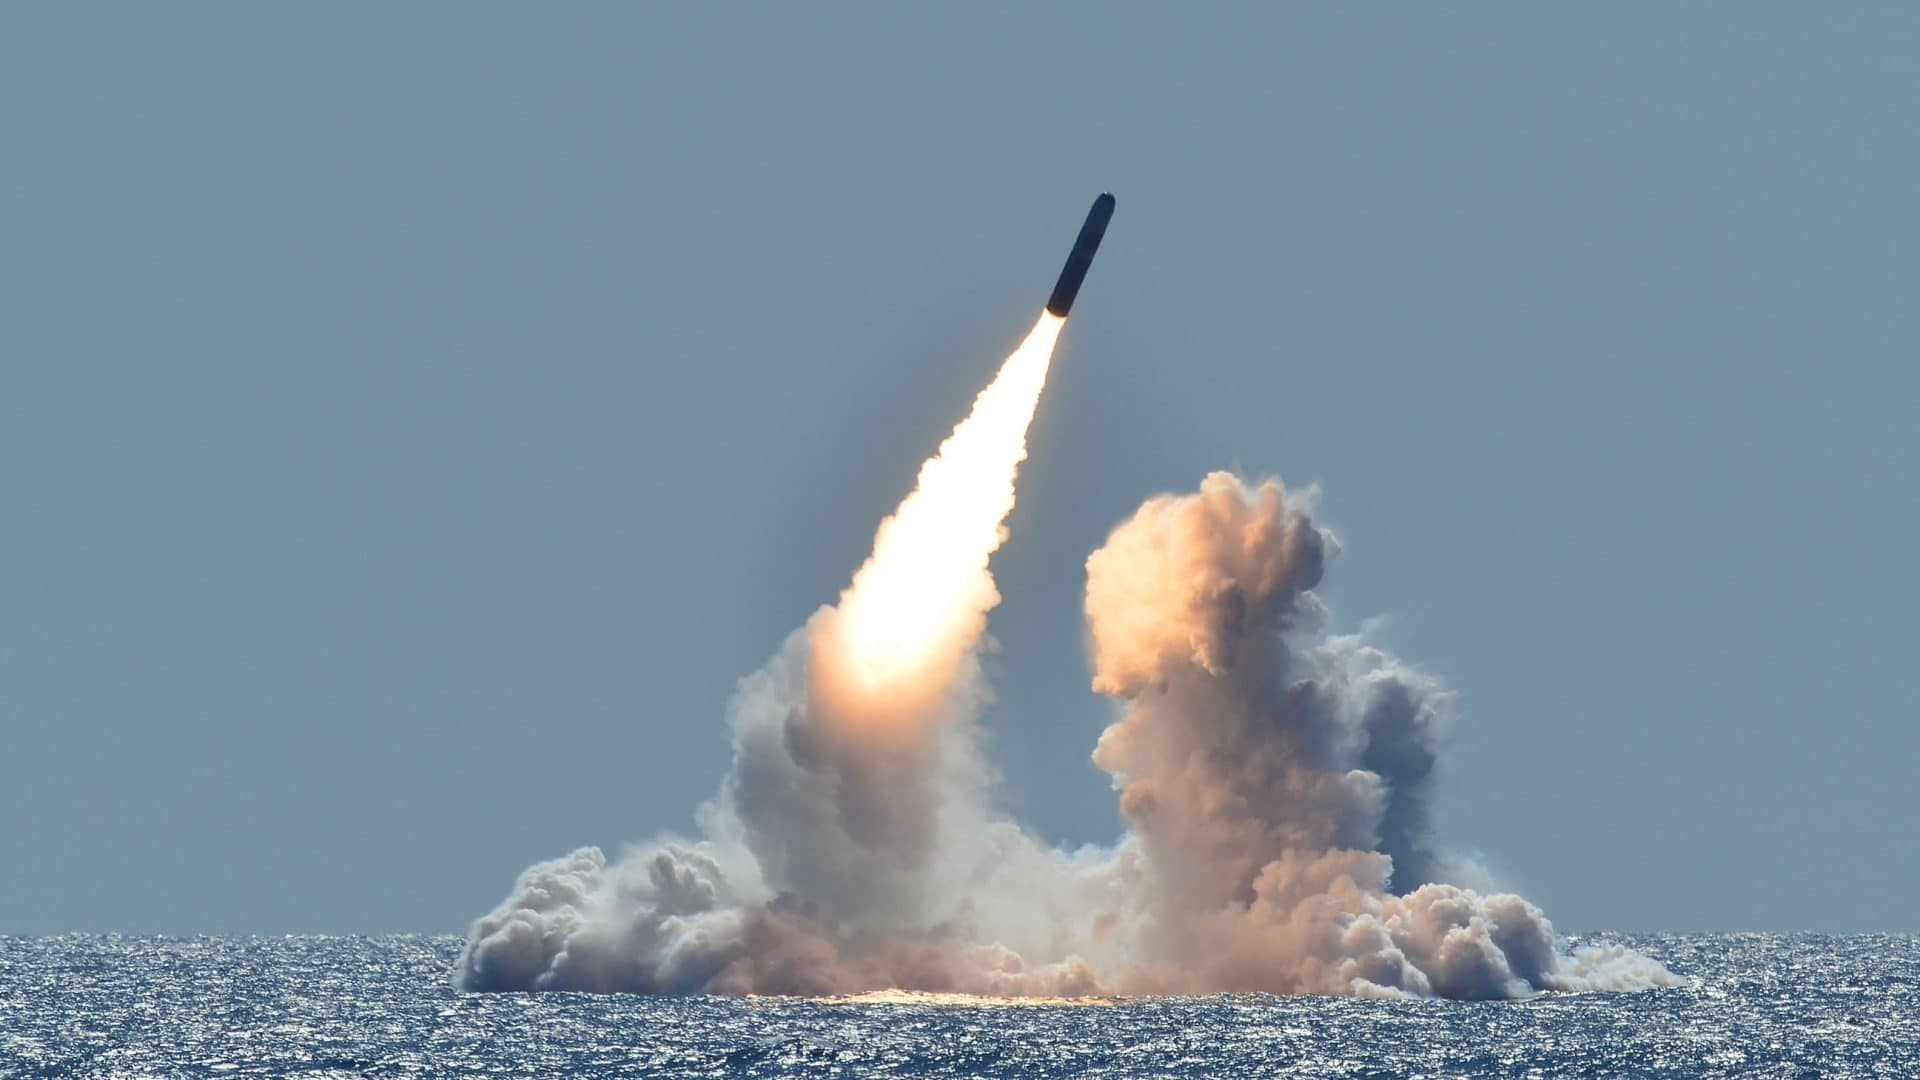 The US military tests a missile in the ocean.